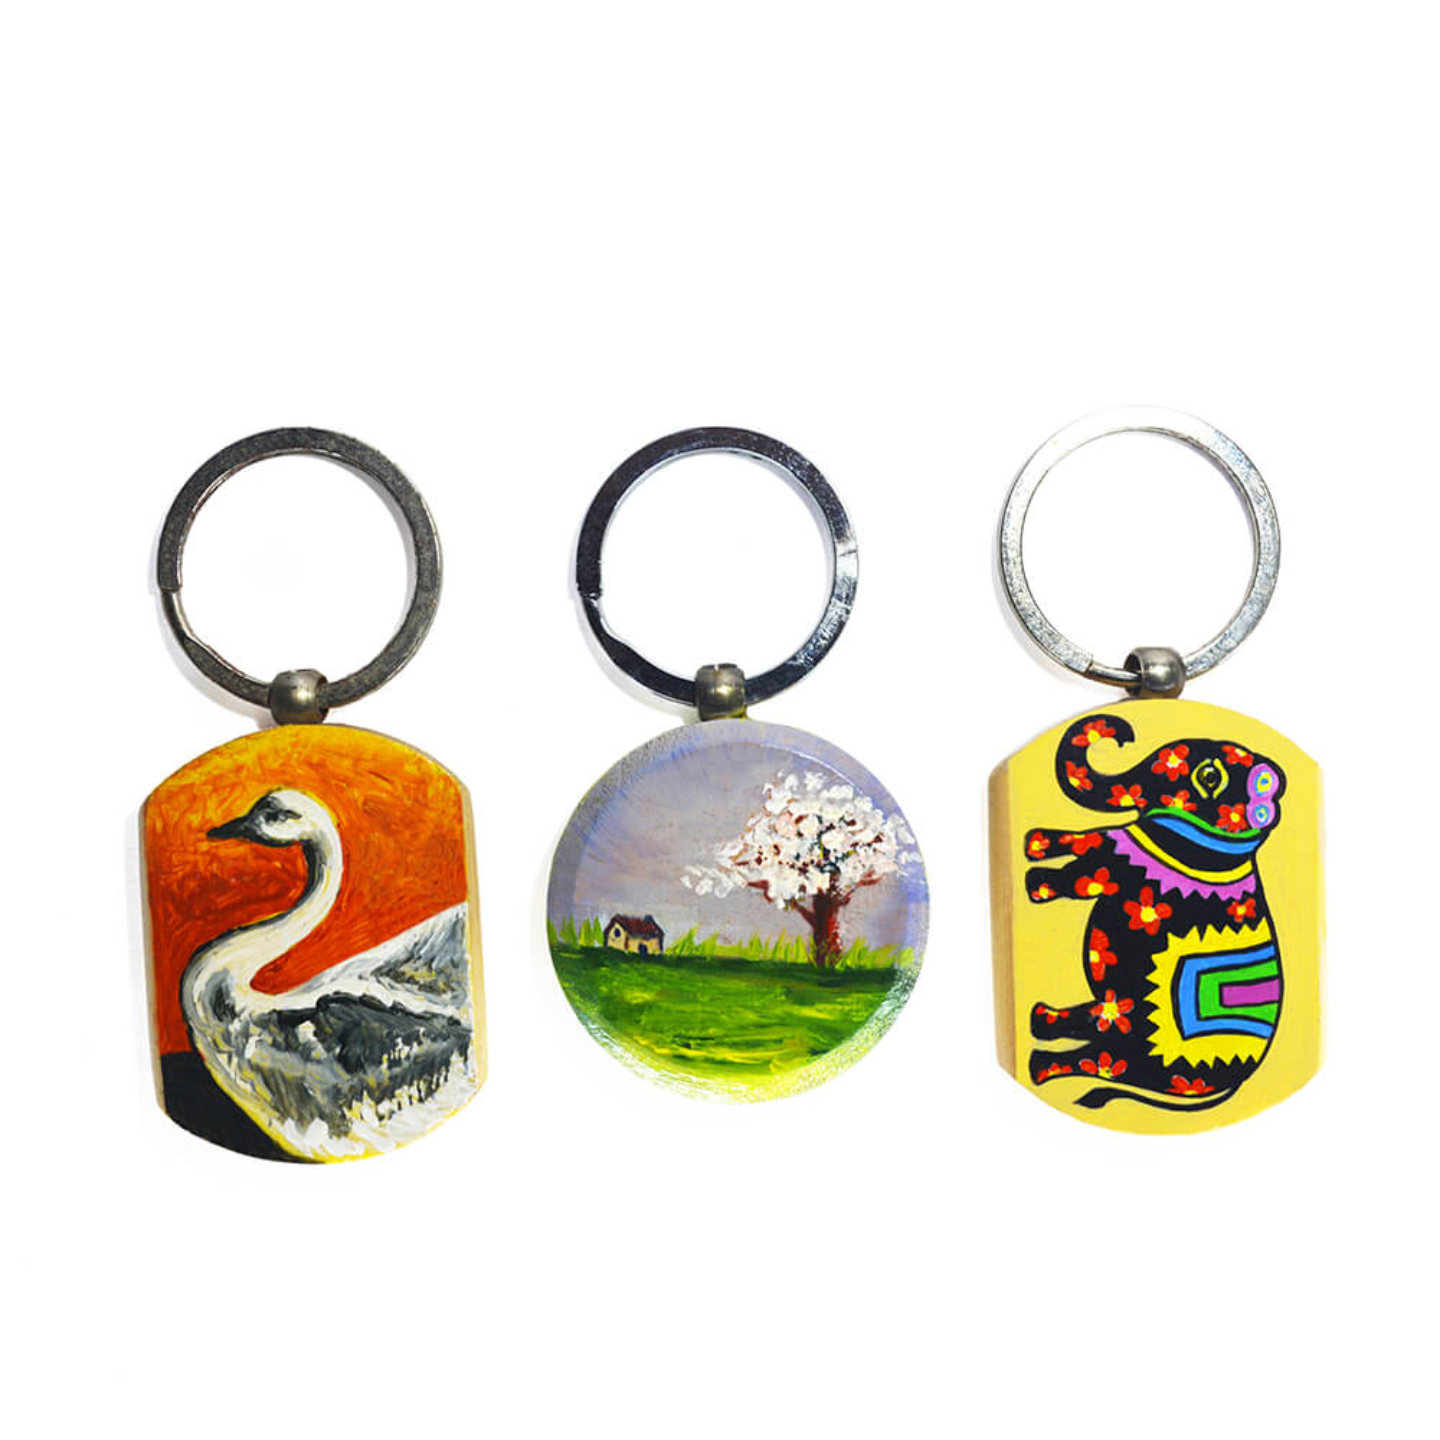 One side hand painted keychain set